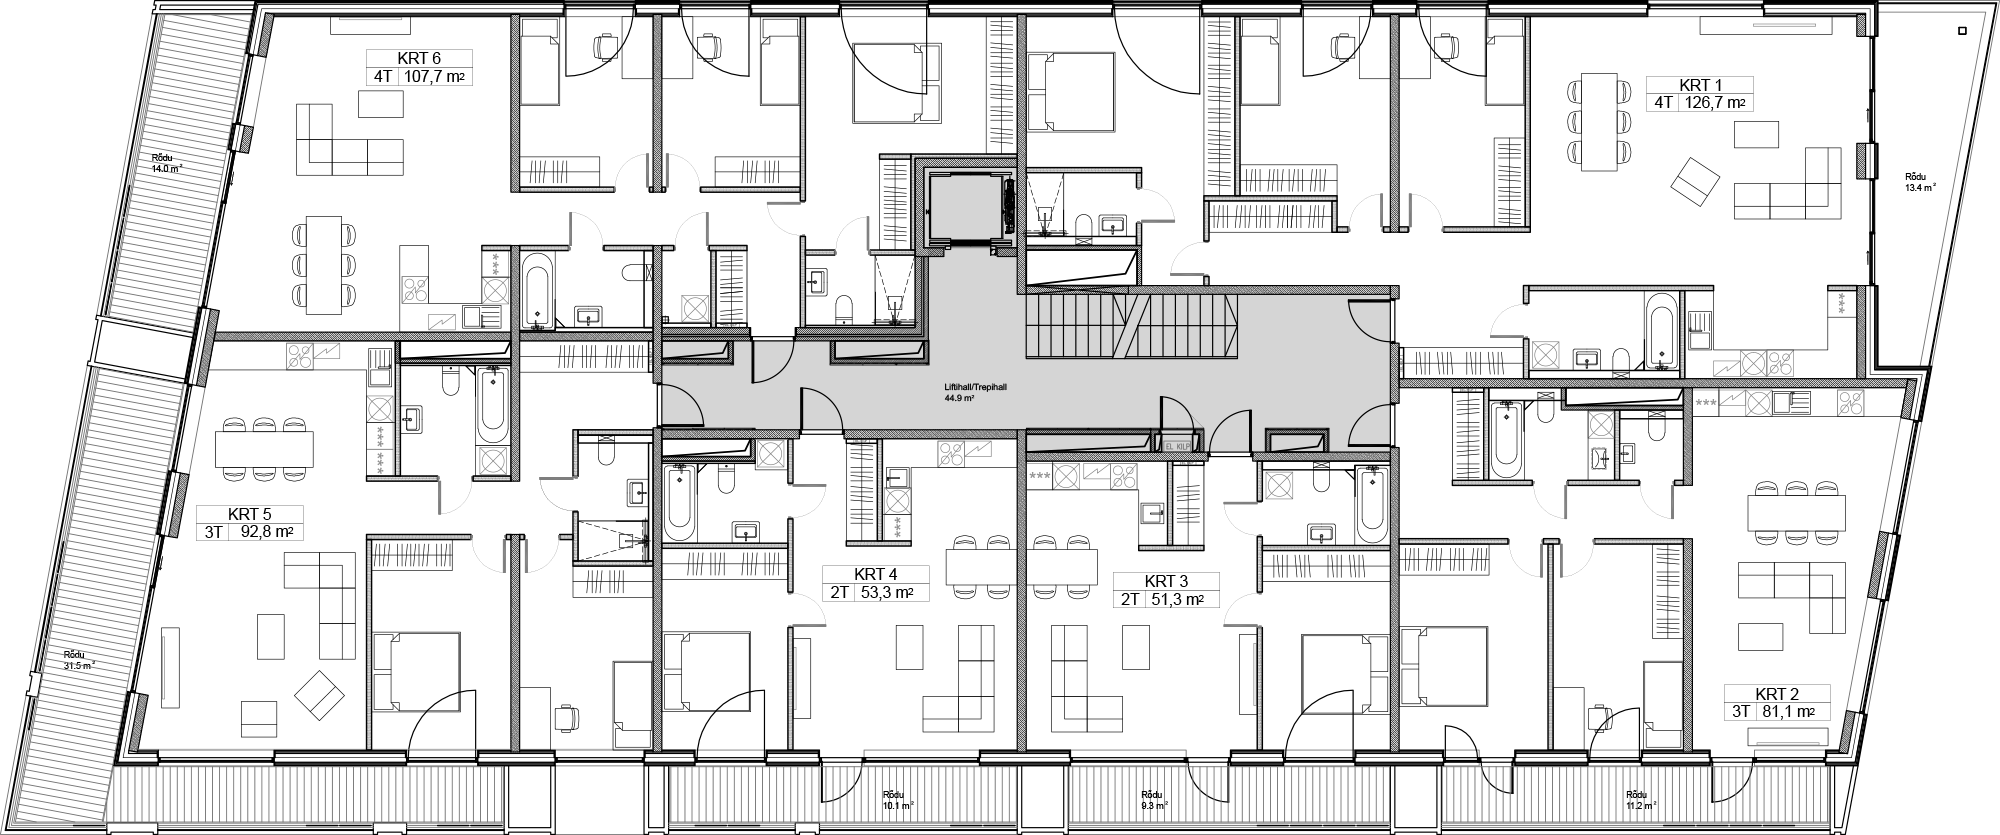 Floor 2 plan of Kiikri Apartment House A